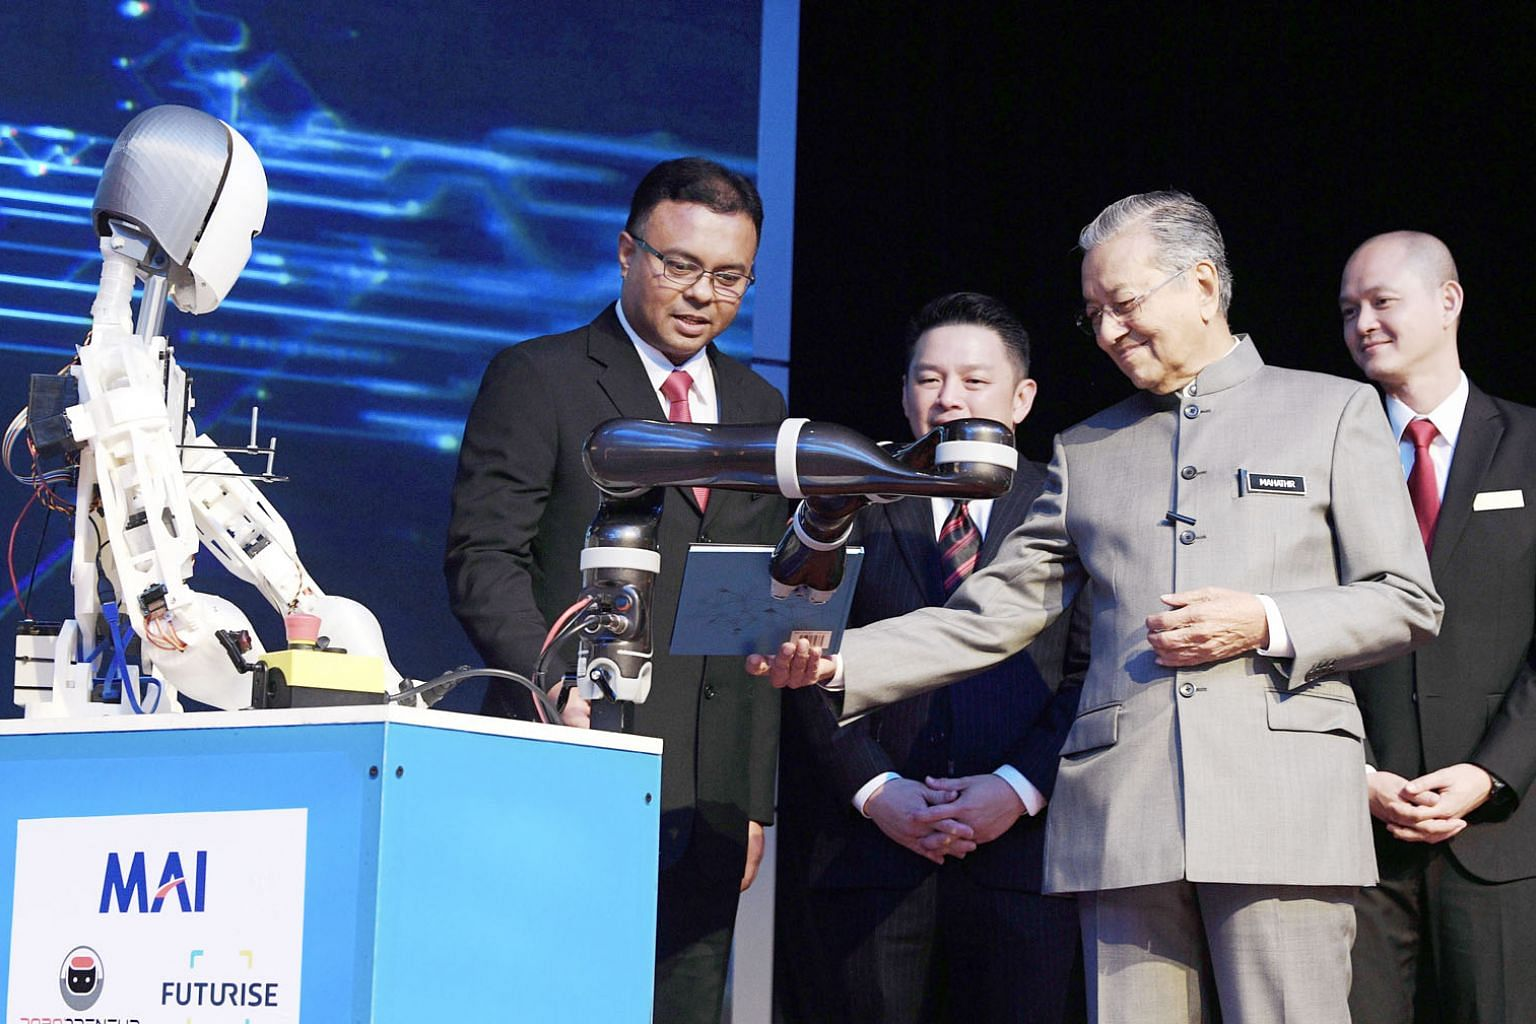 Tun Dr Mahathir Mohamad receiving the National Policy on Industry 4.0 book from a robotic arm at the launch event yesterday. With him are International Trade and Industry Minister Darell Leiking (third from right) and Deputy Minister Ong Kian Ming (r